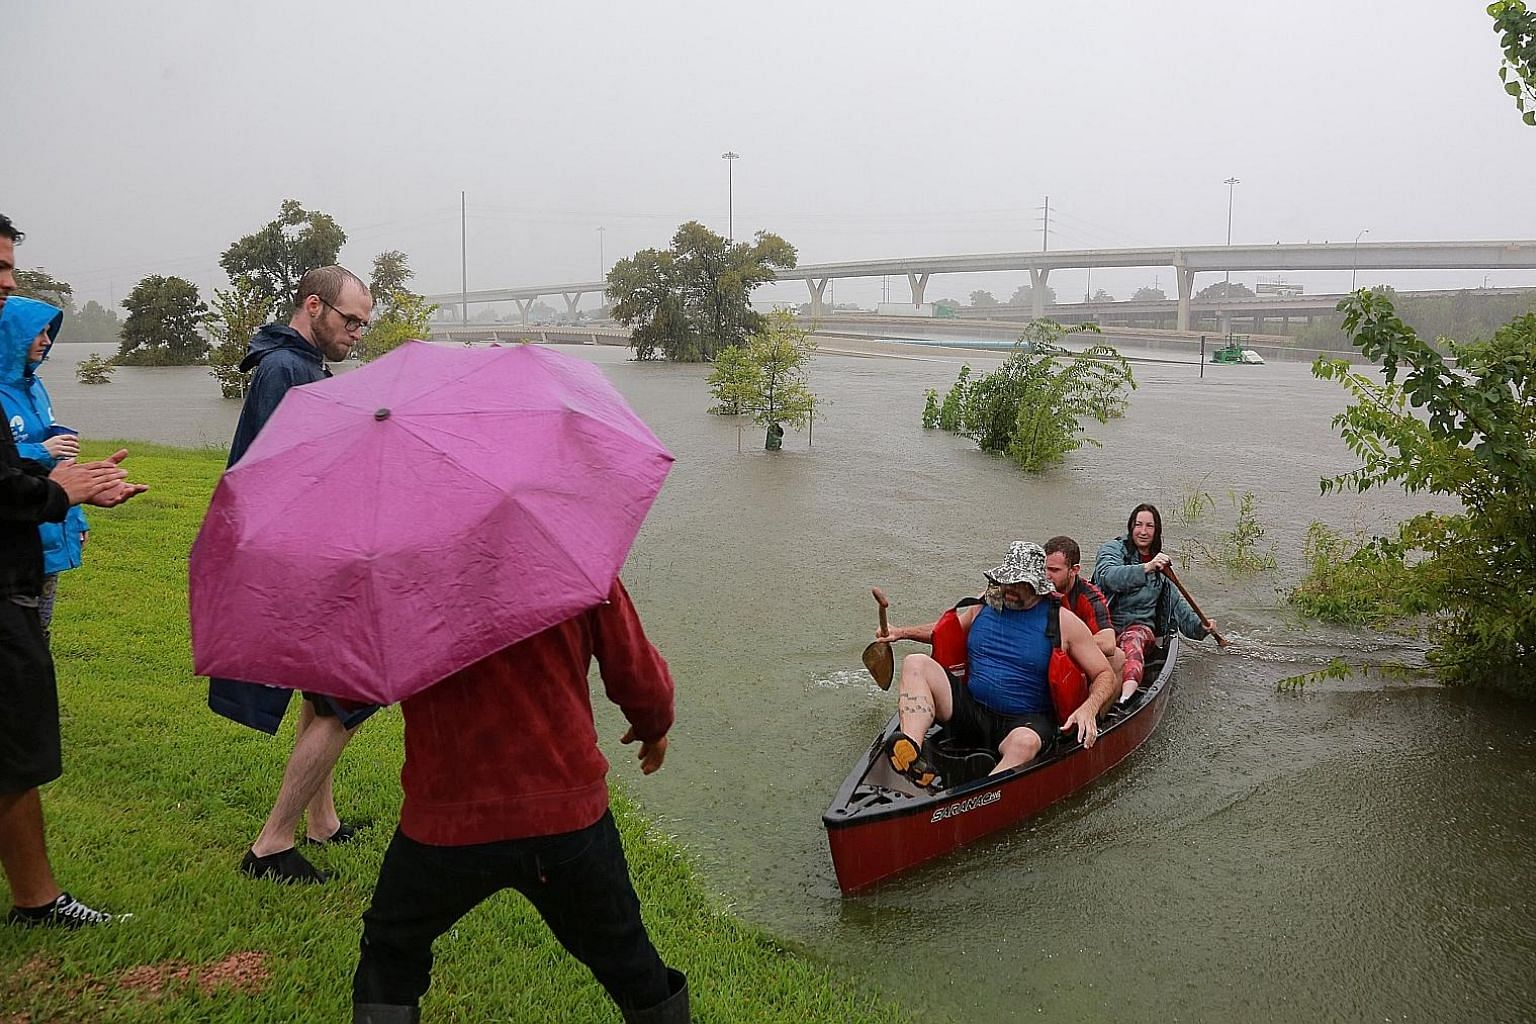 Residents using a kayak to rescue motorists stranded on a highway that was submerged amid widespread flooding caused by Hurricane Harvey last month in Houston, Texas. It took a flooding crisis, says the writer, to join people into one interconnected,